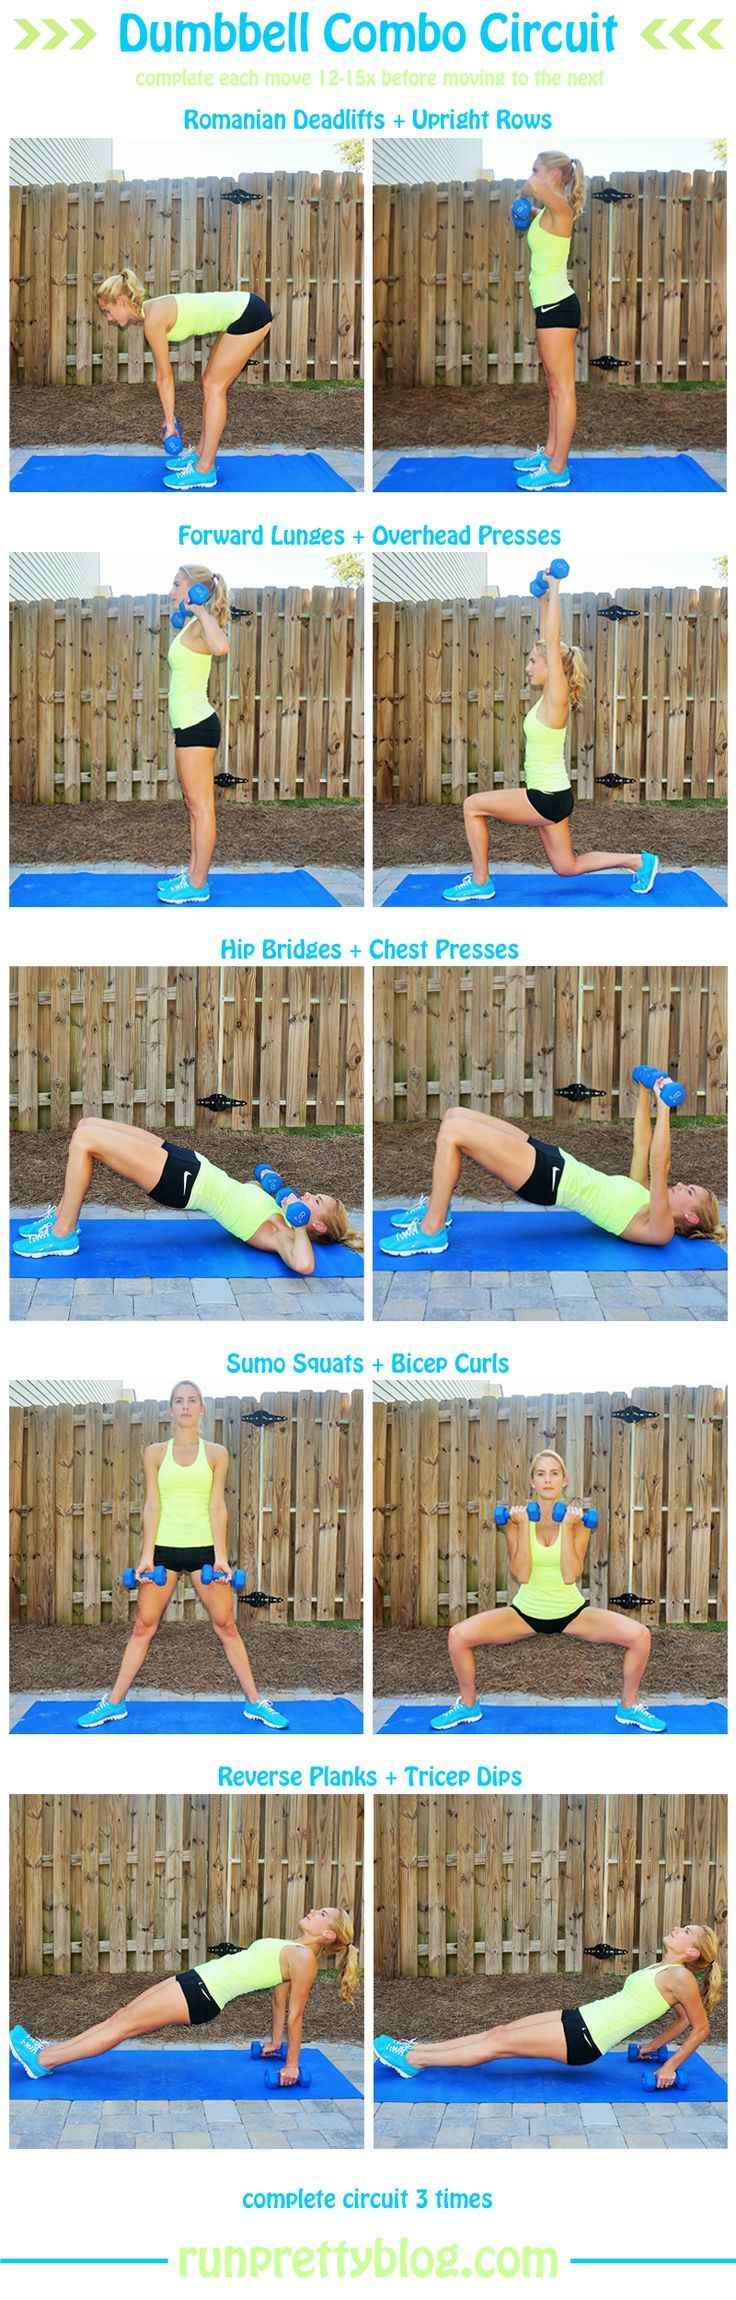 322 Best Exercise Images On Pinterest Workouts Full Body Circuit Workout With Weights 5 Incredible At Home Arm Workoutcircuit Exercisesfitness